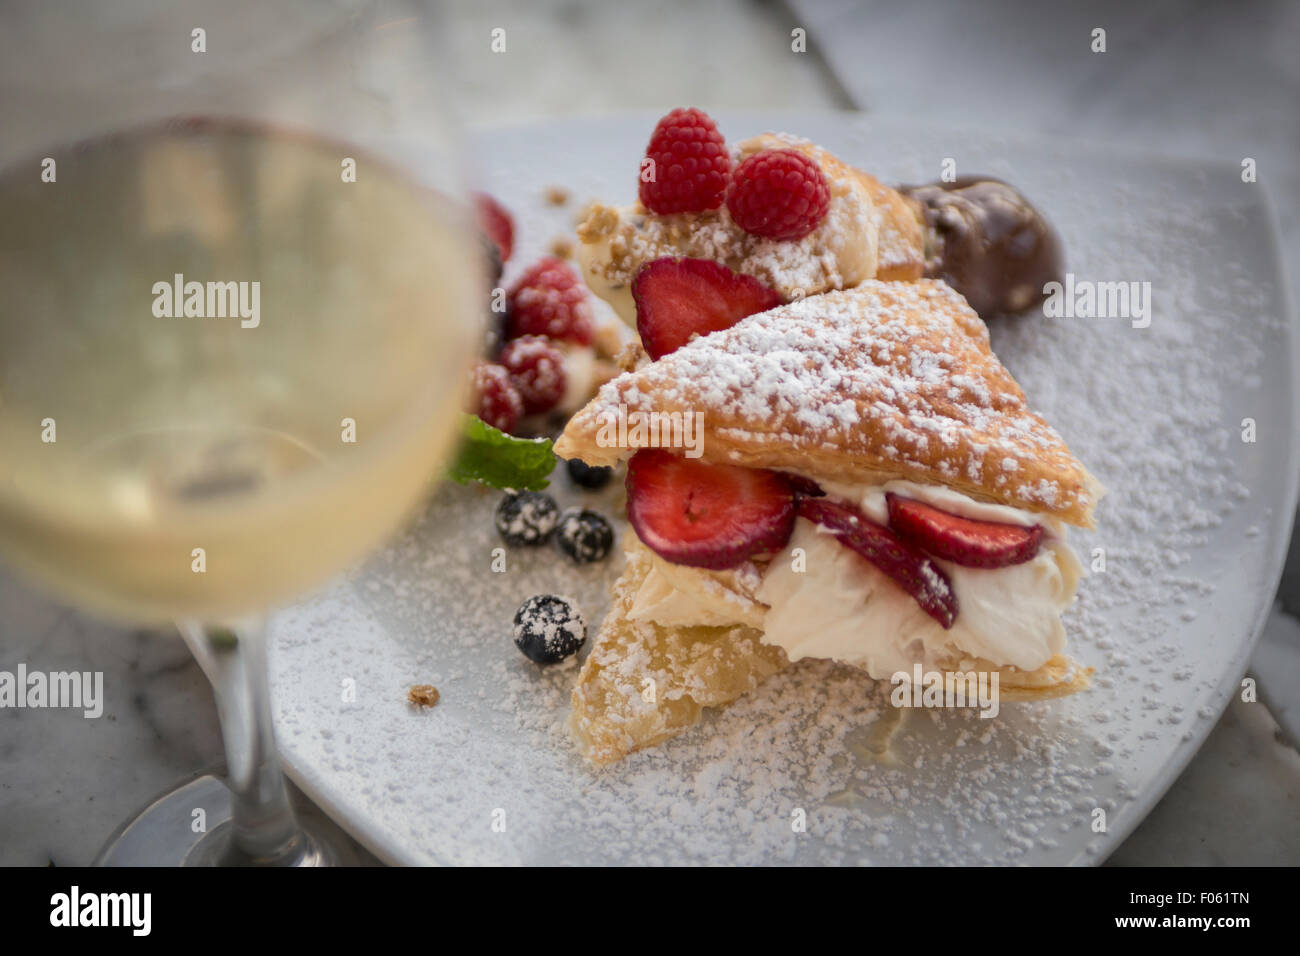 Italian Desserts Garnished with Fruit and White Wine - Stock Image